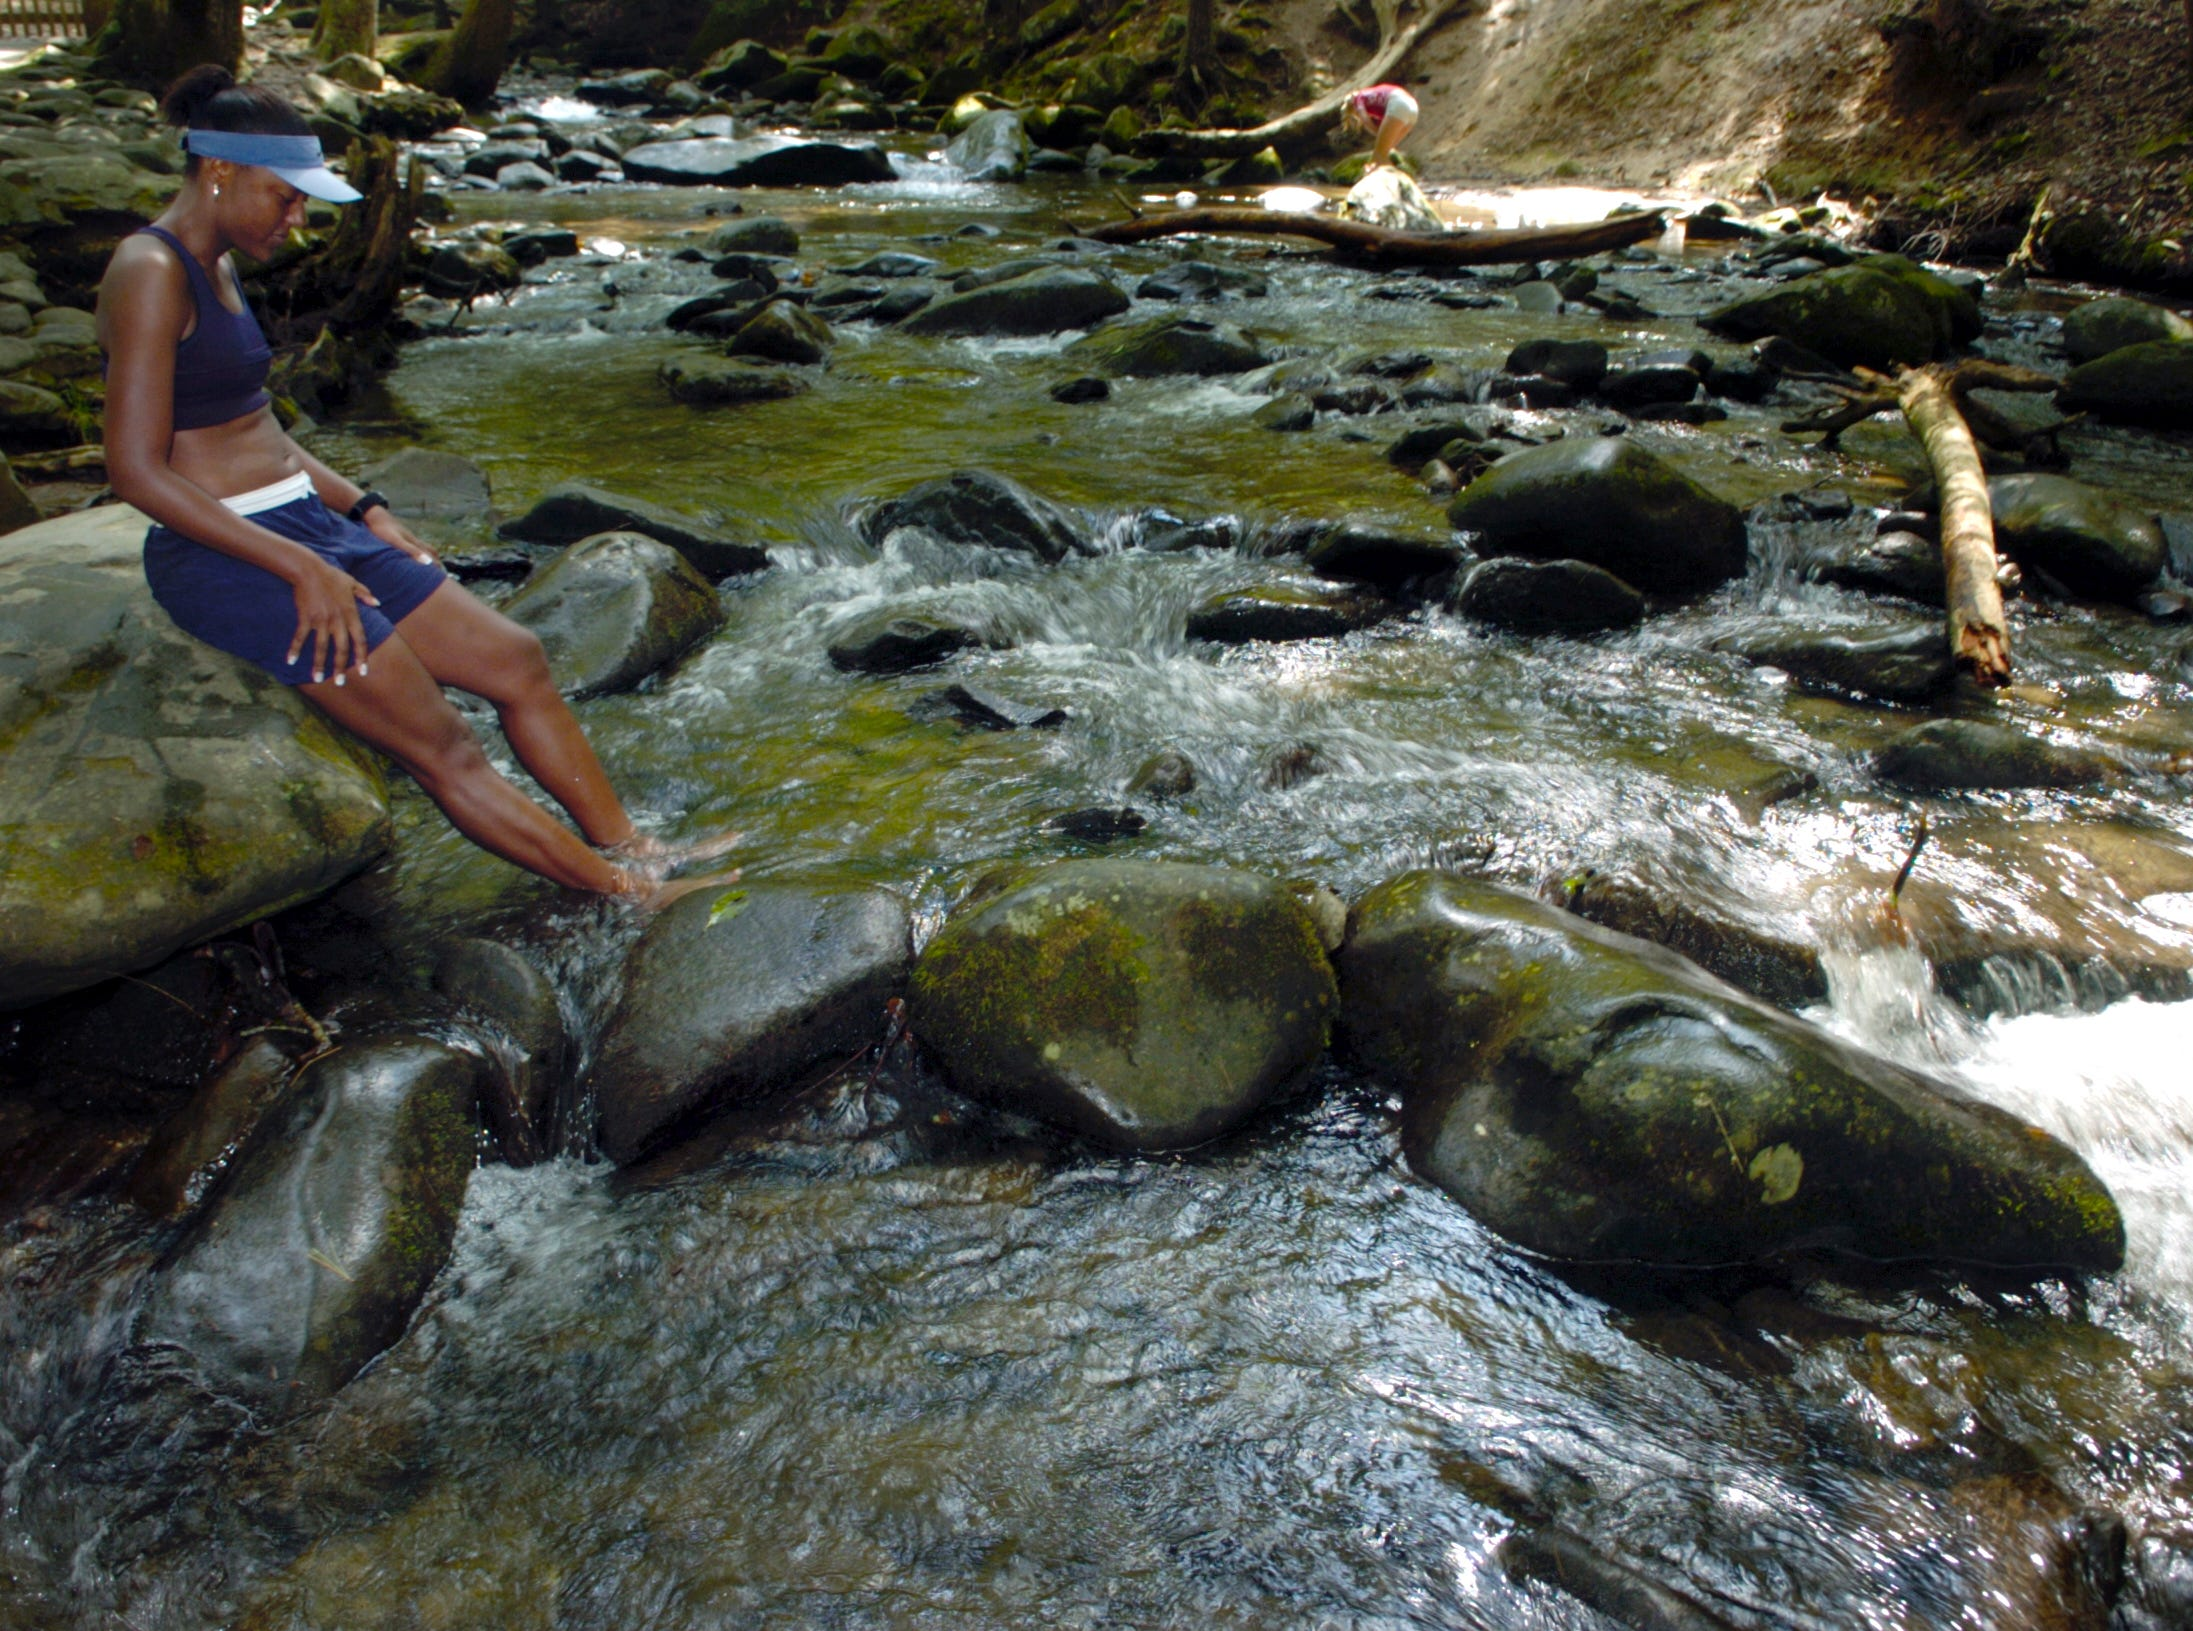 Kayla Montgomery cools her feet in a stream running out of the Great Smoky Mountain National Park following a 16 mile run in Cades Cove with a group of ladies to prepare for an all-woman Team in Training marathon.